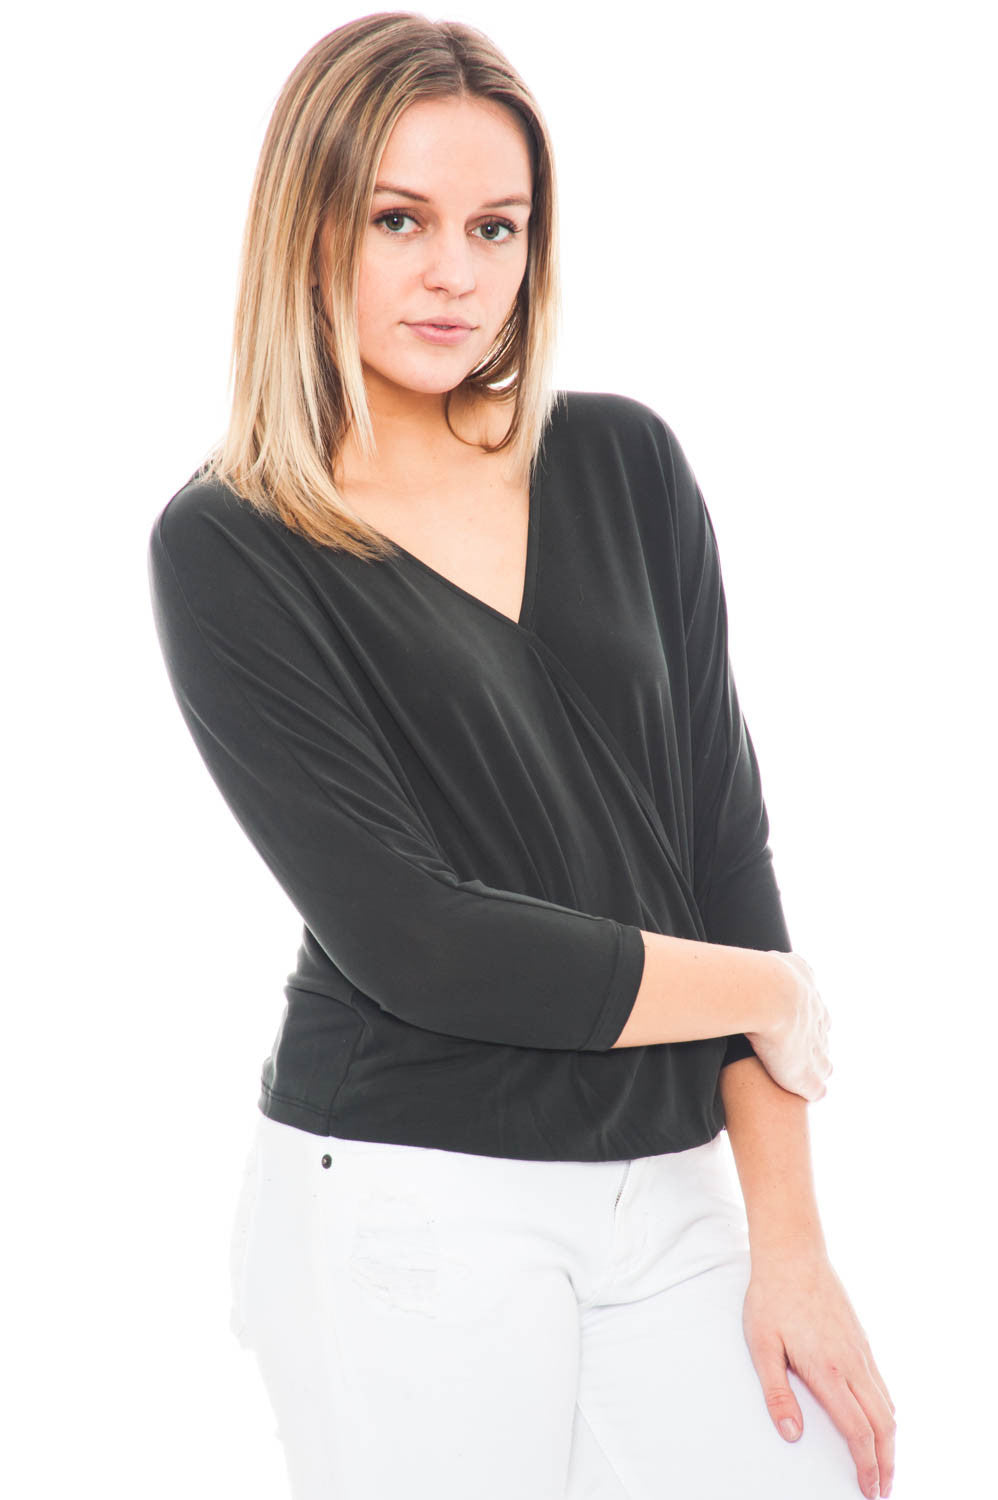 Shirt - 3/4 Sleeve Top with an Overlap Front by Everly